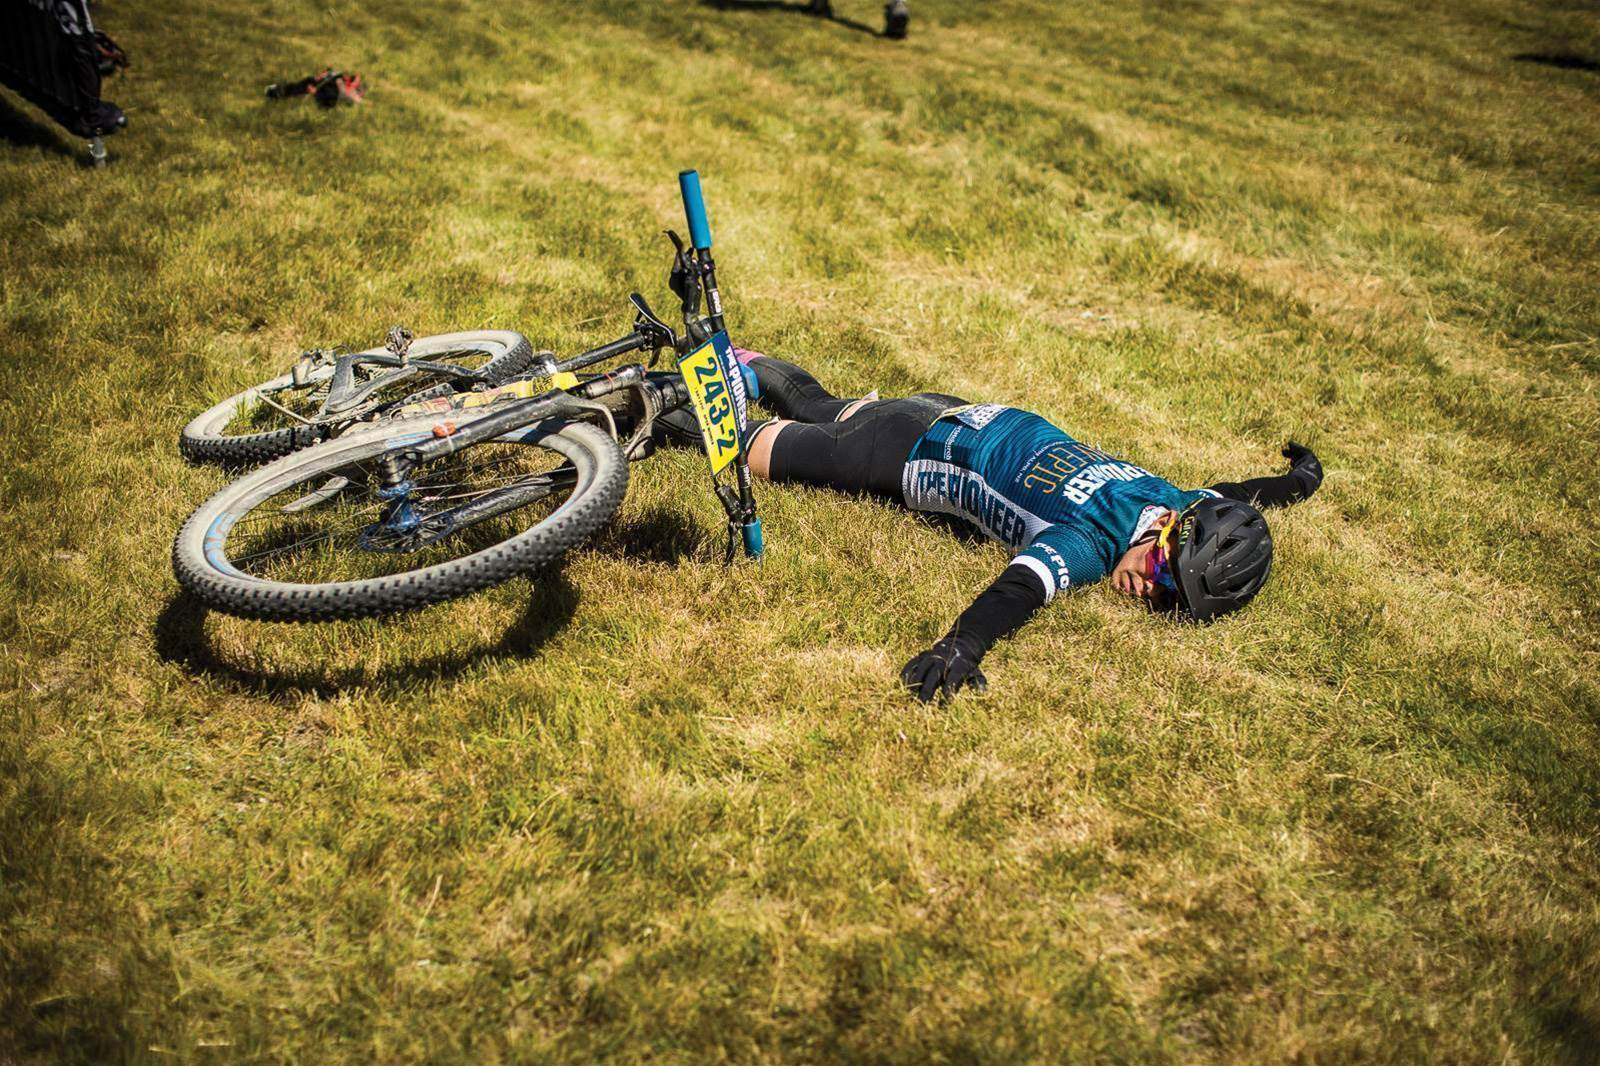 NUTRITION: THE ART OF SUFFERING AND BEATING FATIGUE